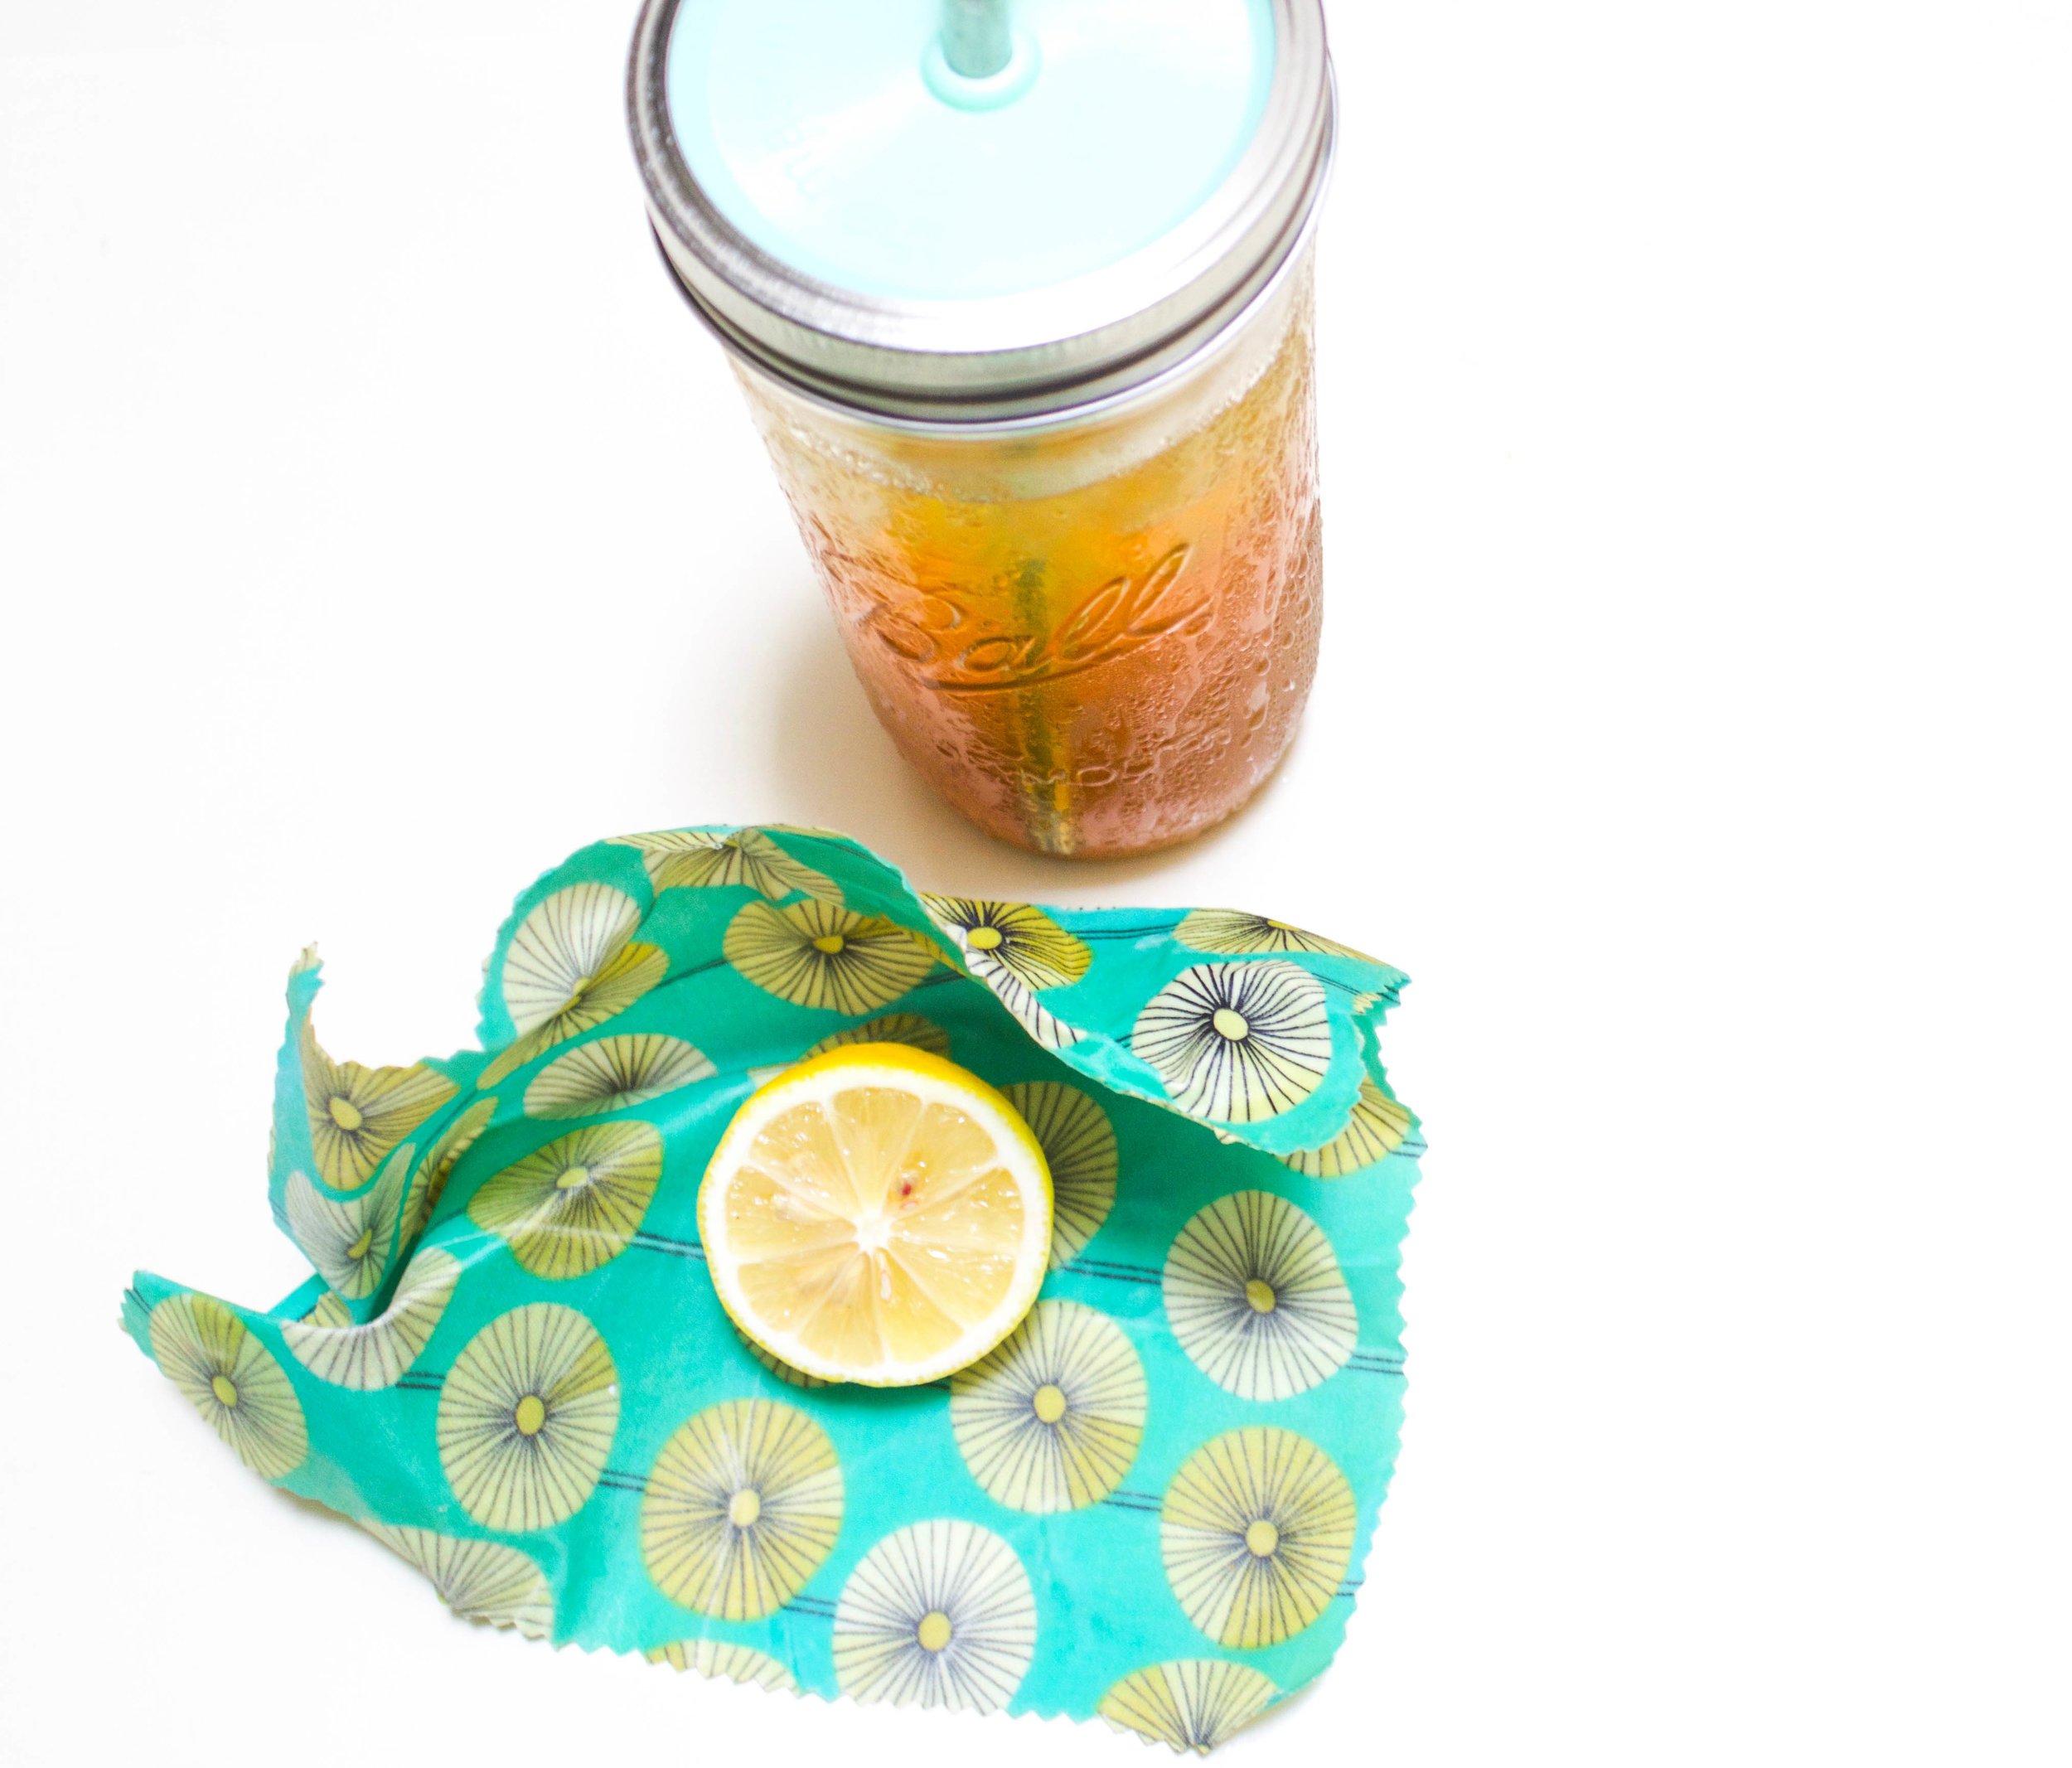 Reduce Waste with Beeswax Wrap